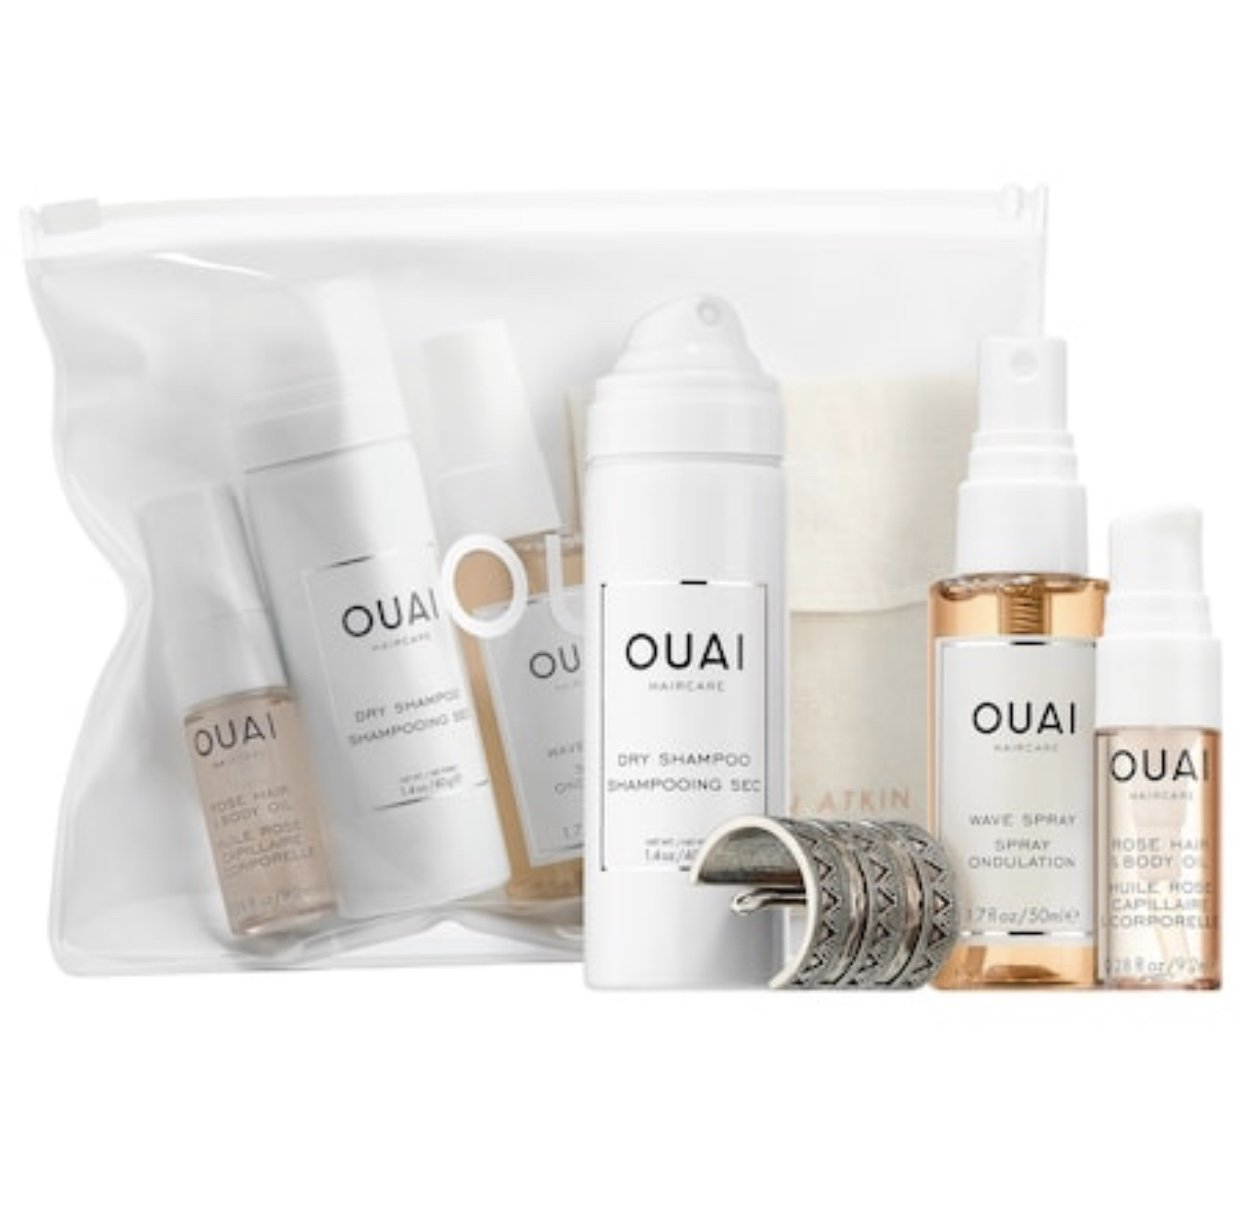 Ouai Desert OUAIsis Festival Kit: Rose Hair & Body Oil, Dry Shampoo Foam, Wave Spray, Jen Atkin x Chloe + Isabel Ponytail Piece (Limited Edition)